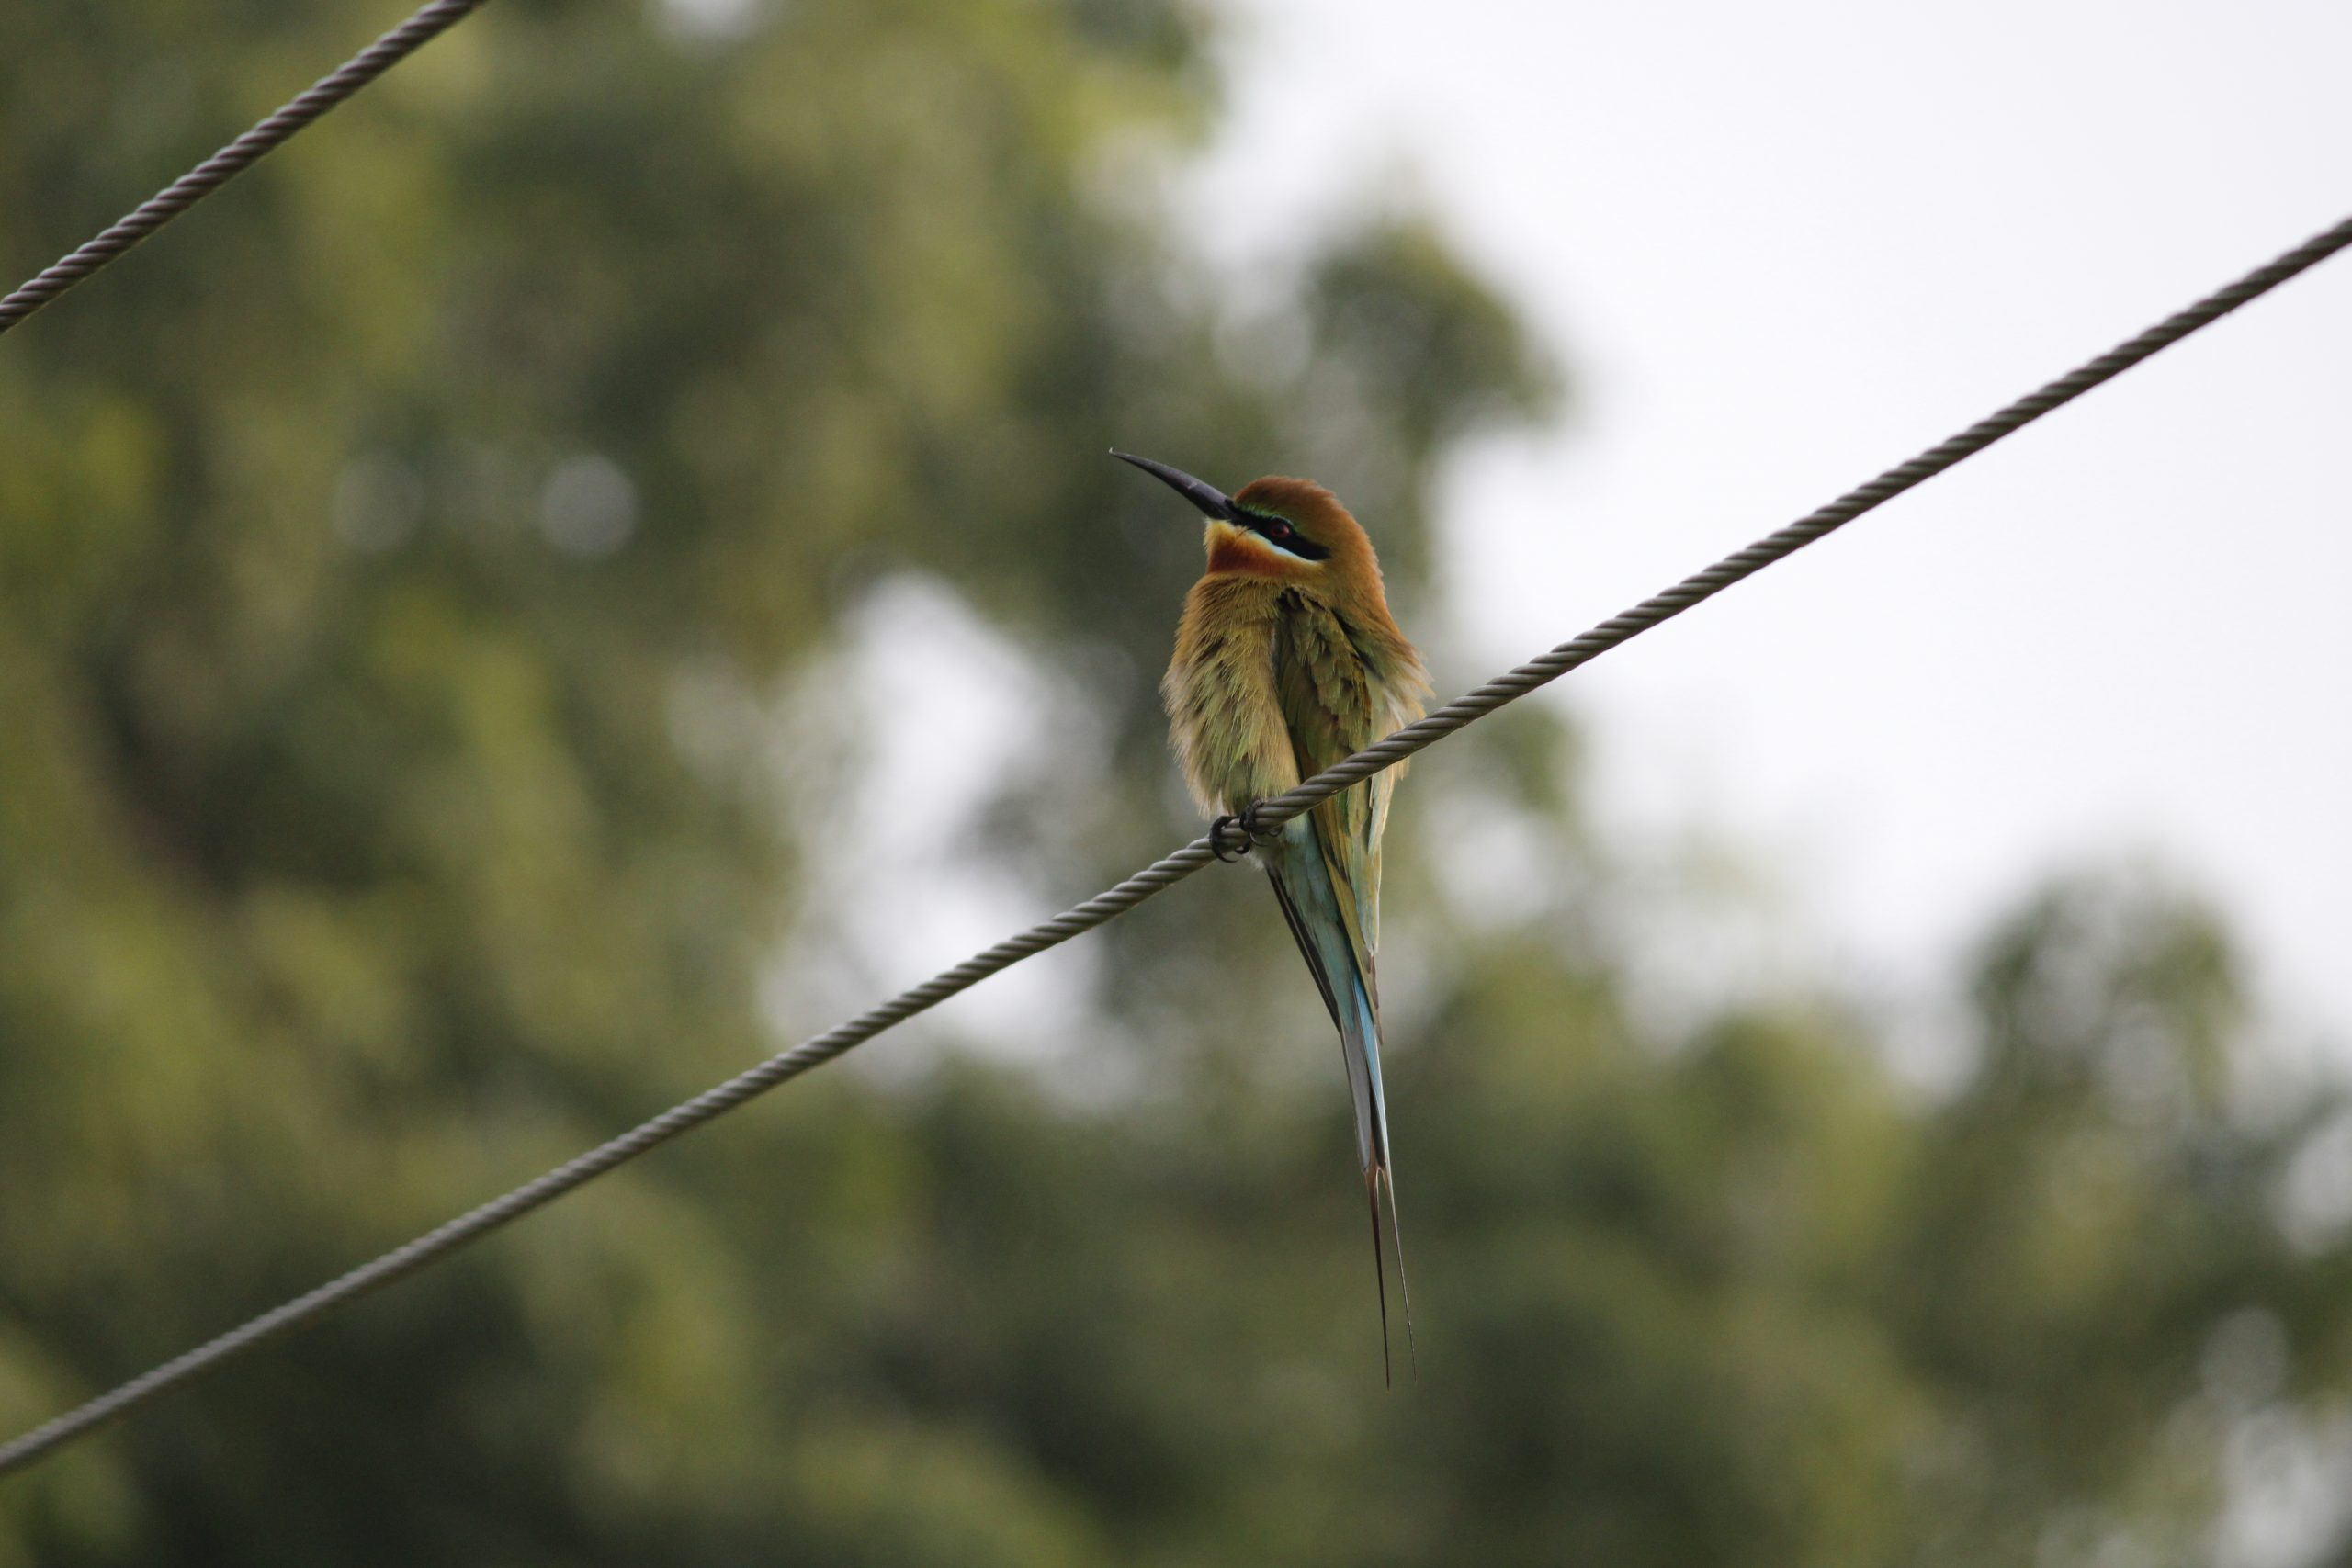 Bird sitting on a wire